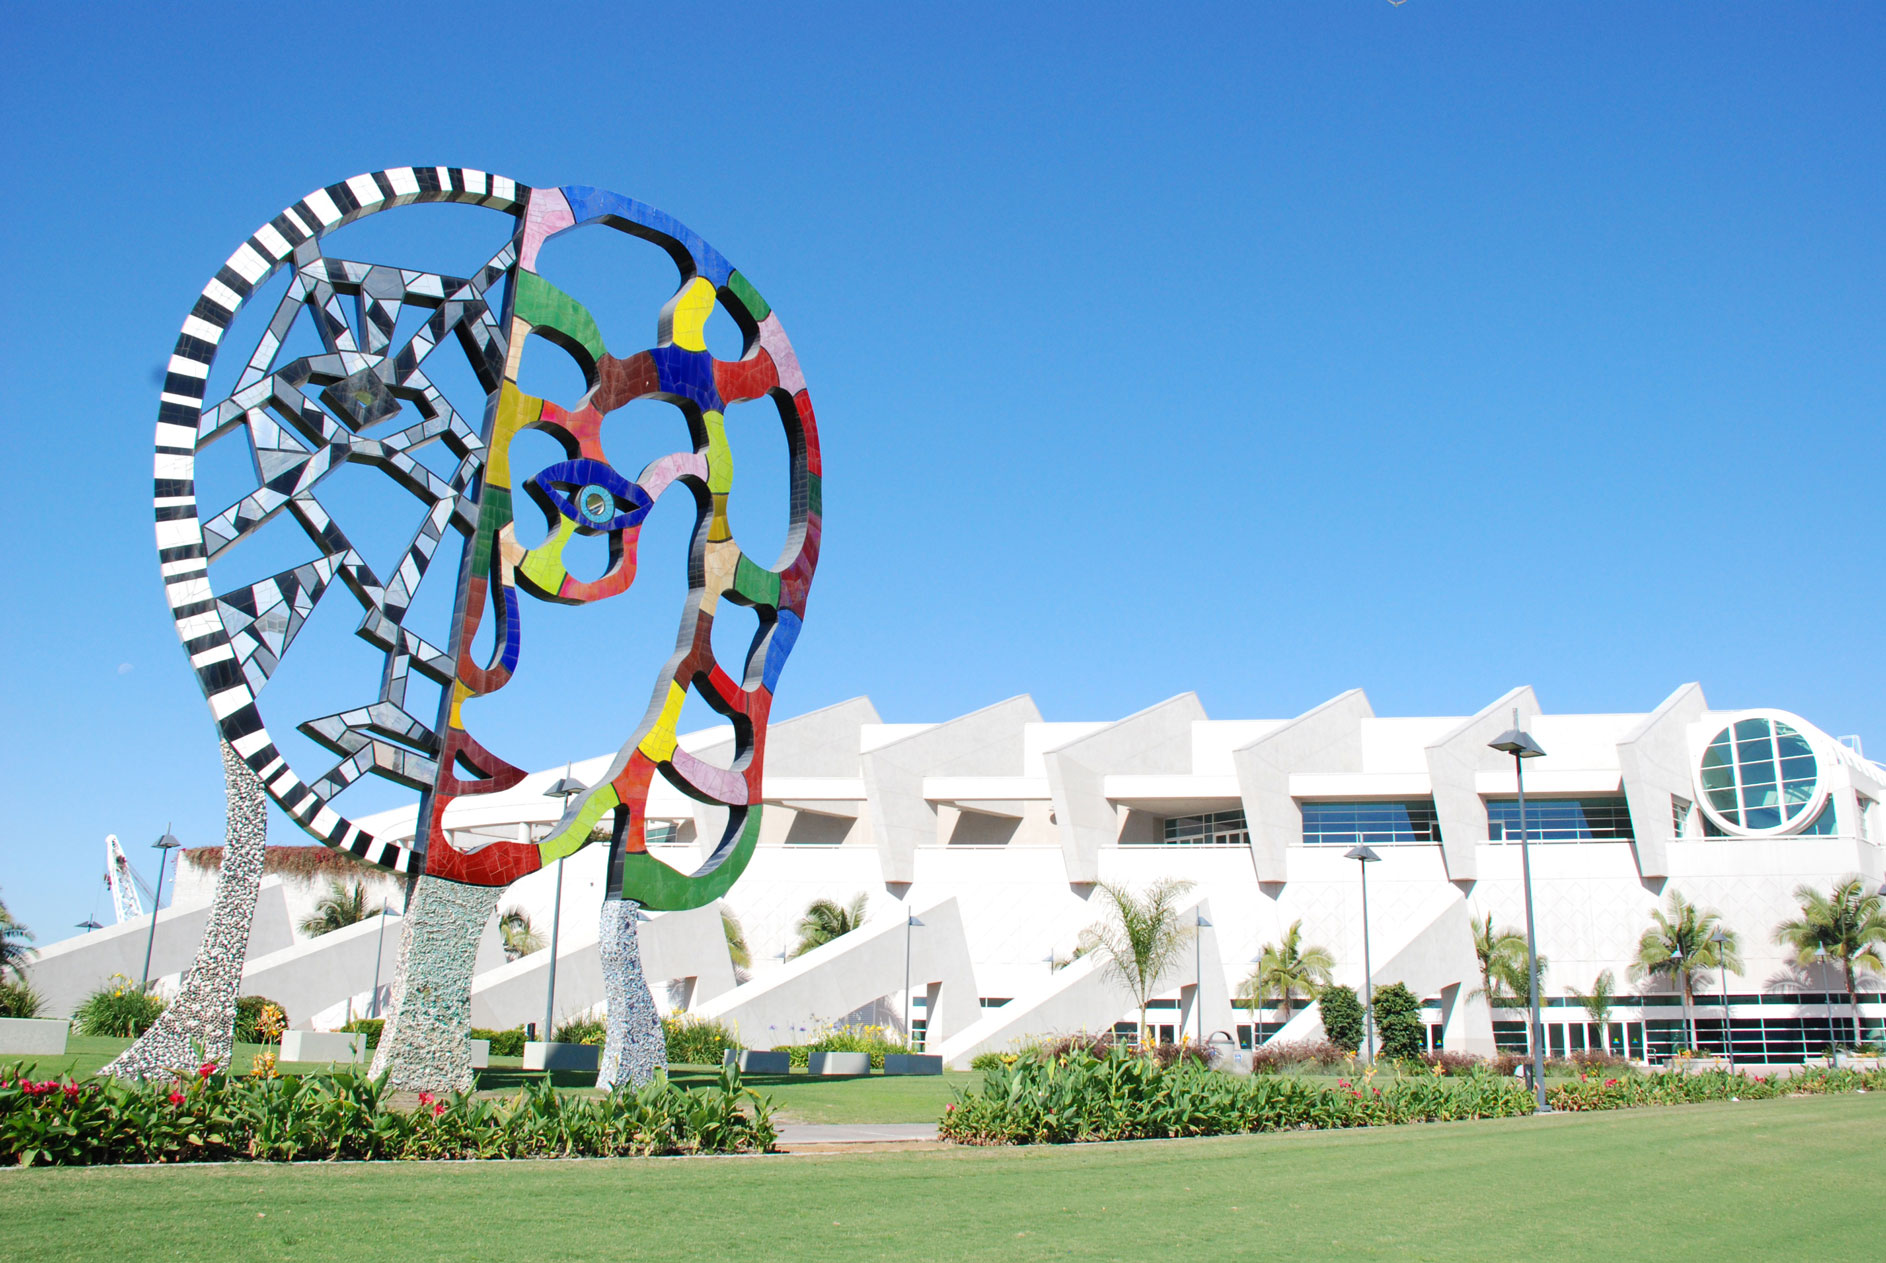 """The large colorful sculpture titles """"Coming Together"""" stands on the South end of the Convention Center in San Diego, California."""